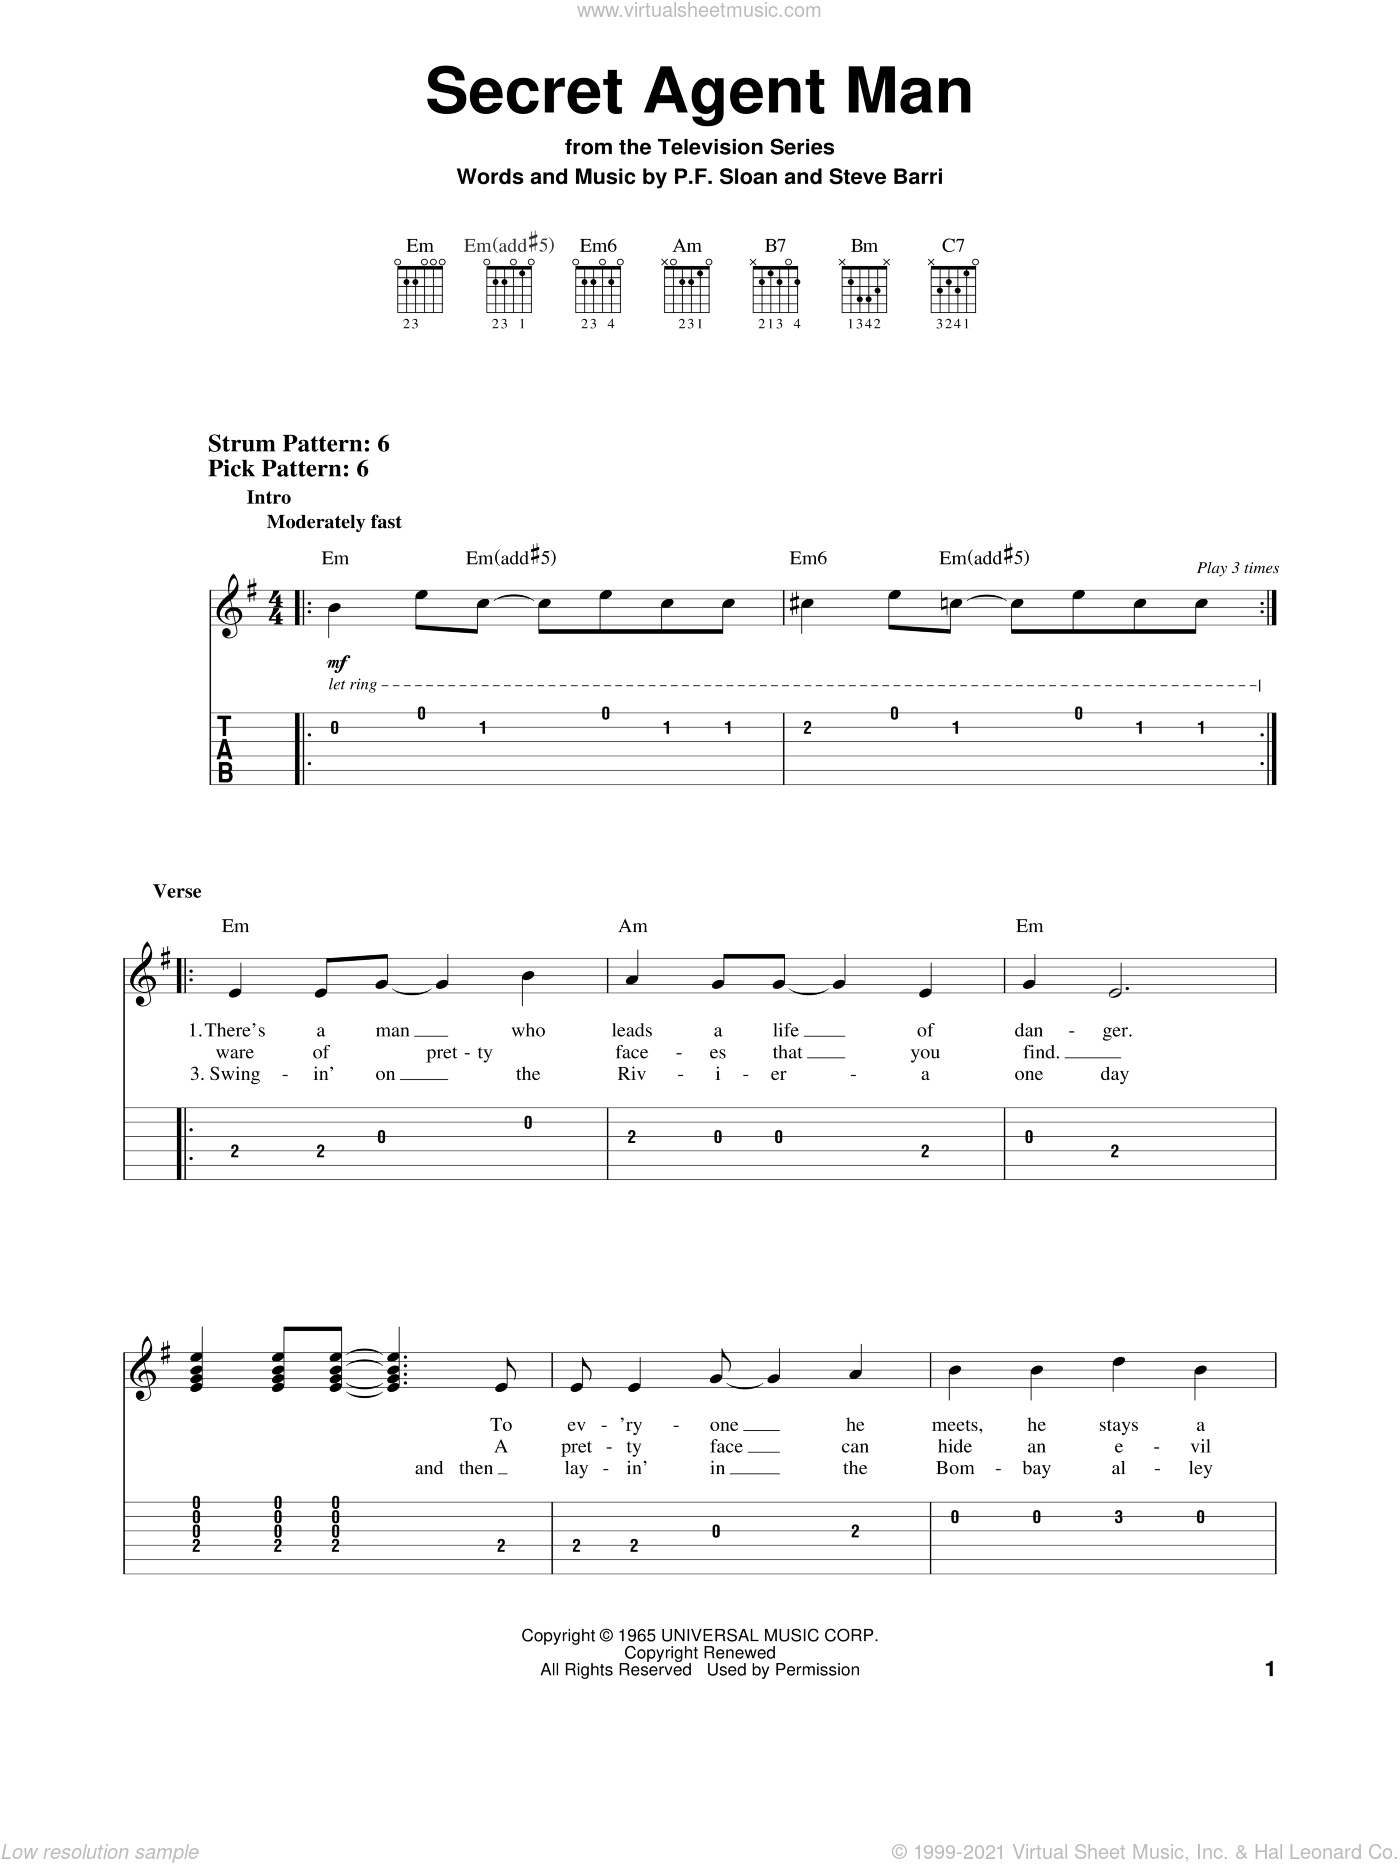 Secret Agent Man sheet music for guitar solo (easy tablature) by Steve Barri, Johnny Rivers and P.F. Sloan. Score Image Preview.